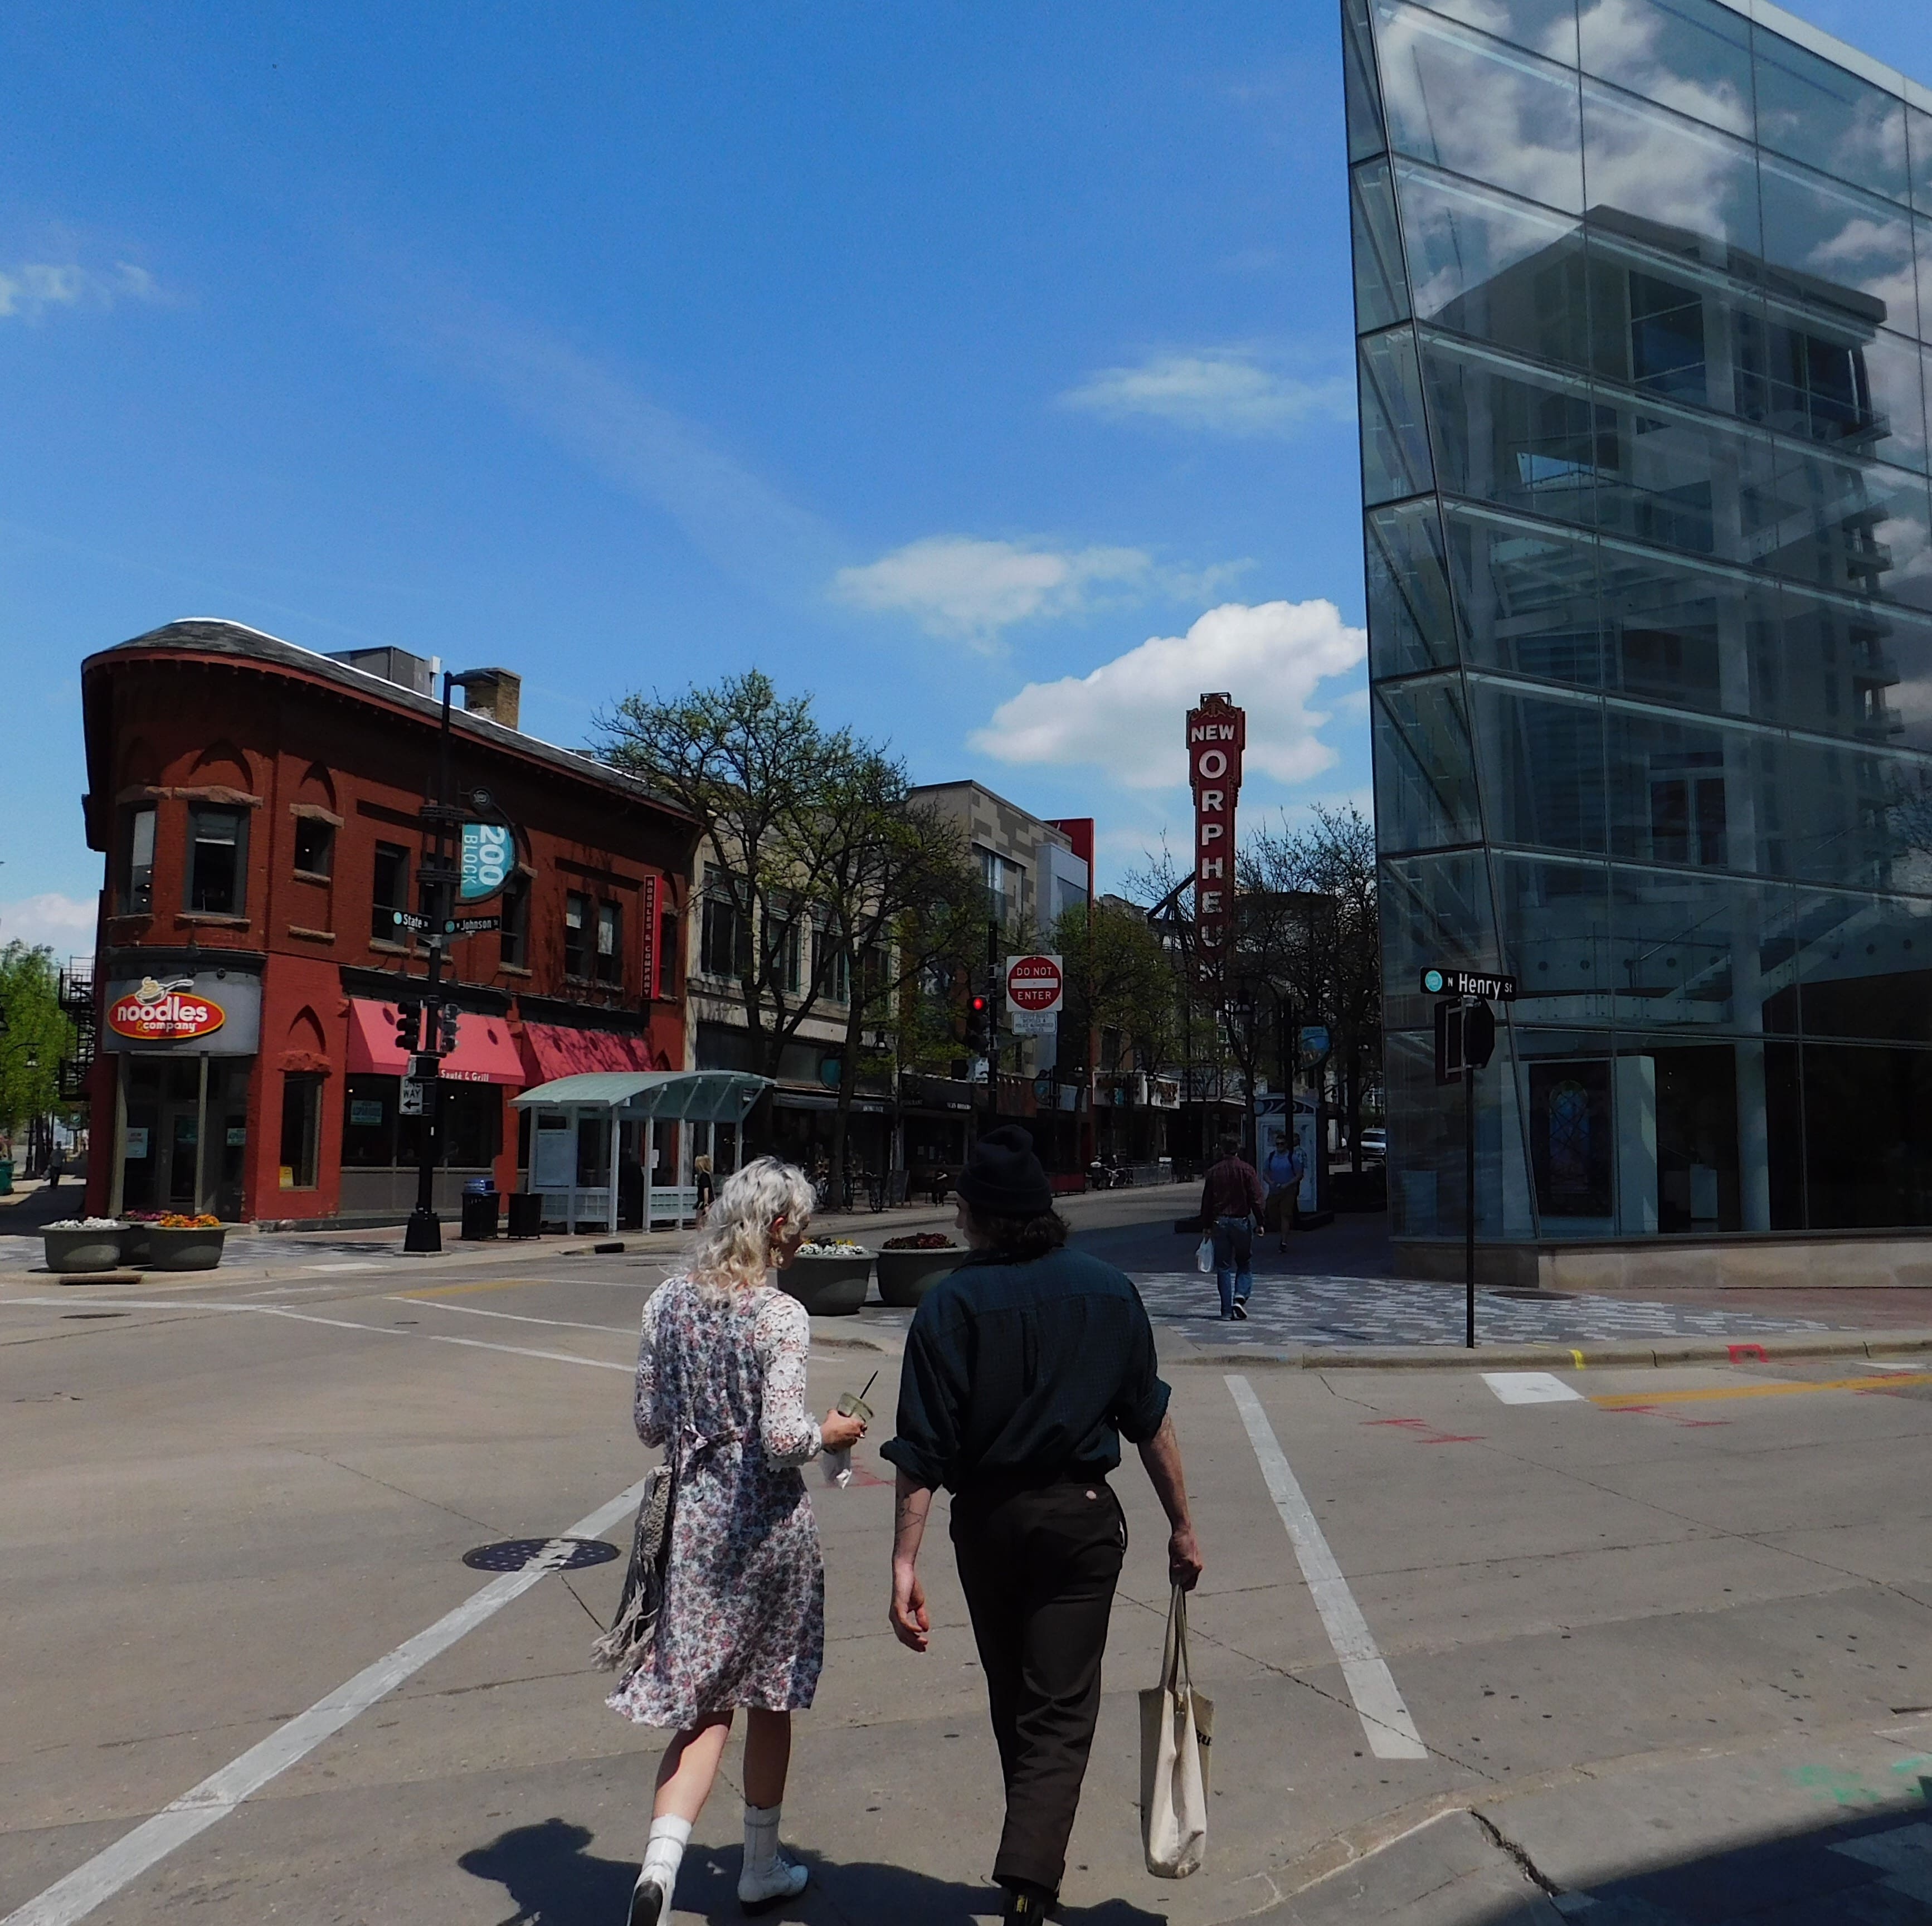 A young couple walks along state street